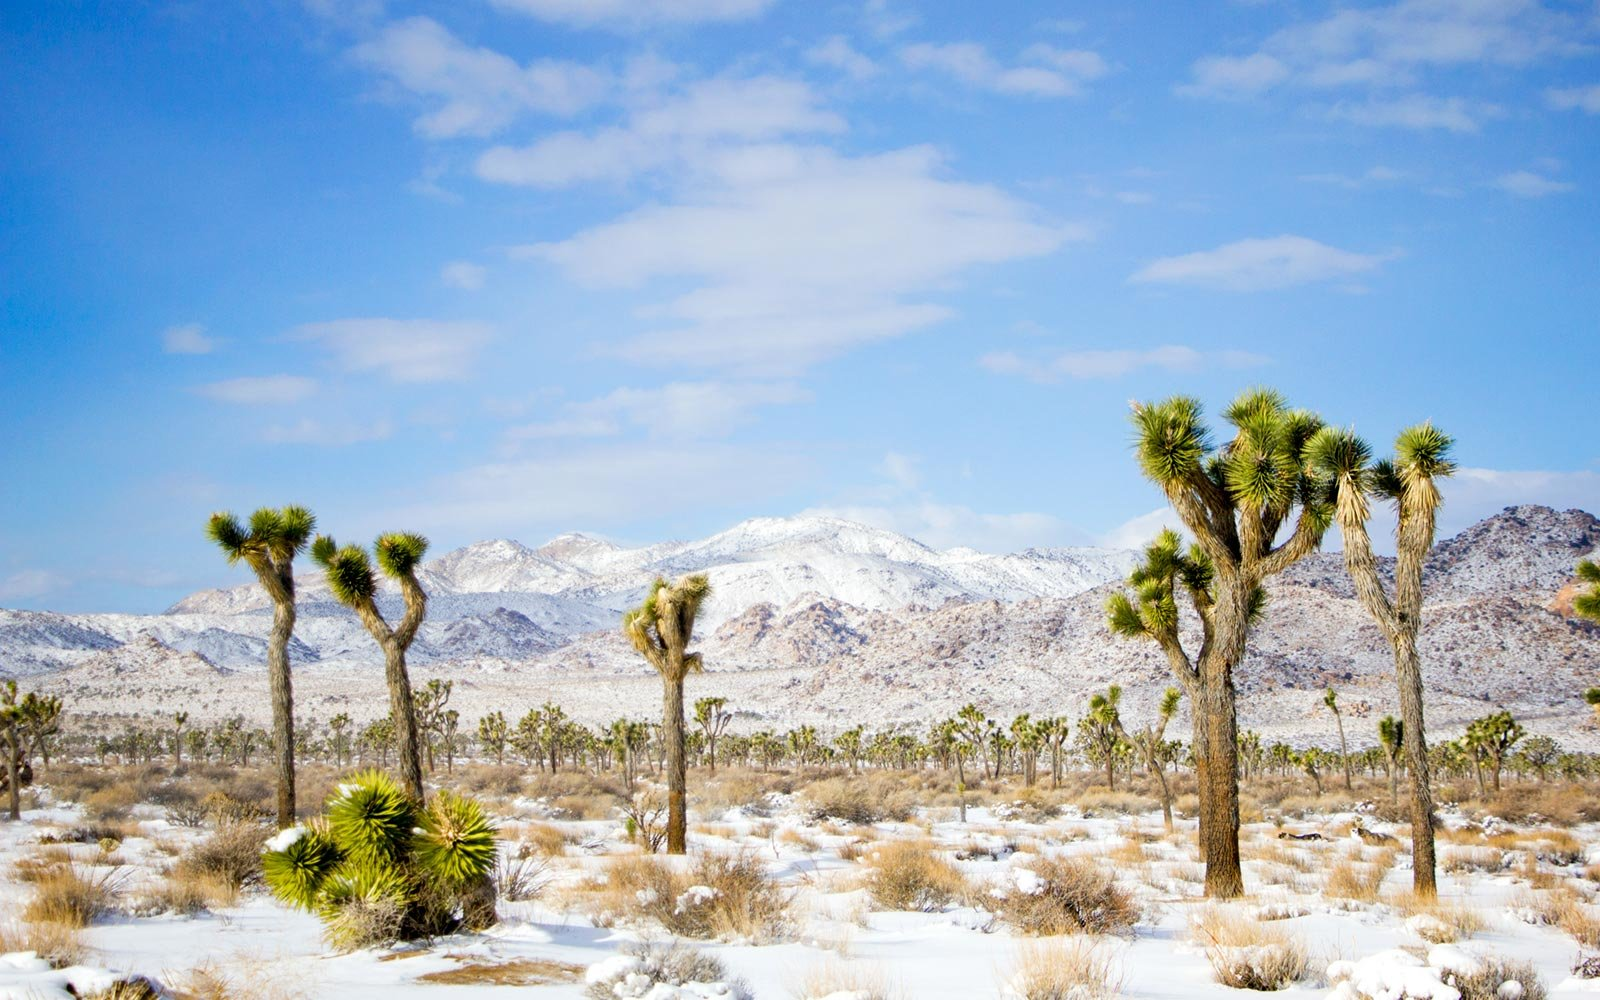 Snow, Joshua Tree National Park, Southern California